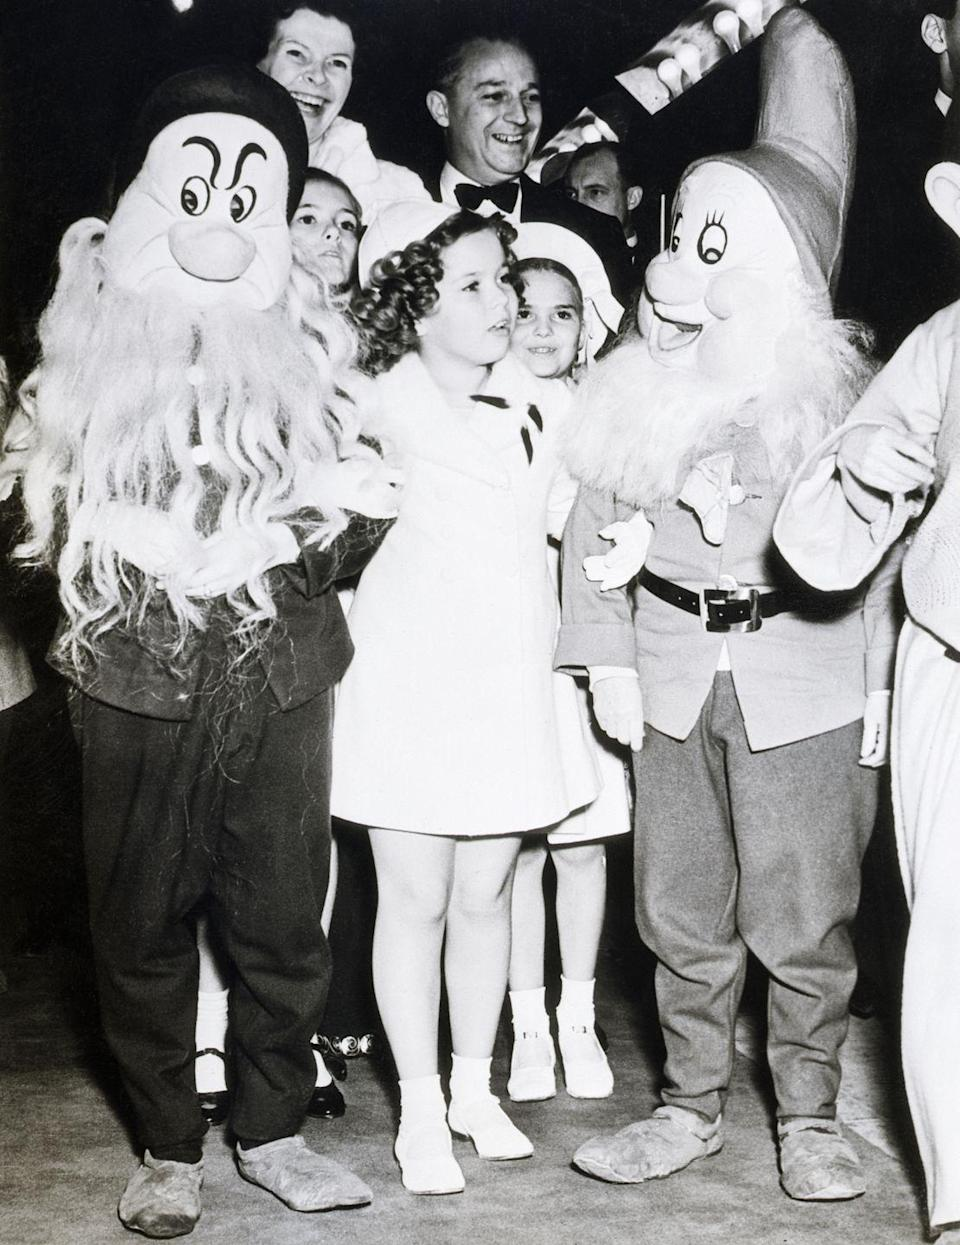 <p>Child star Shirley Temple poses with costumed dwarfs at the Hollywood film premiere of Disney's S<em>now White and the Seven Dwarfs</em> on December 23, 1937.</p>